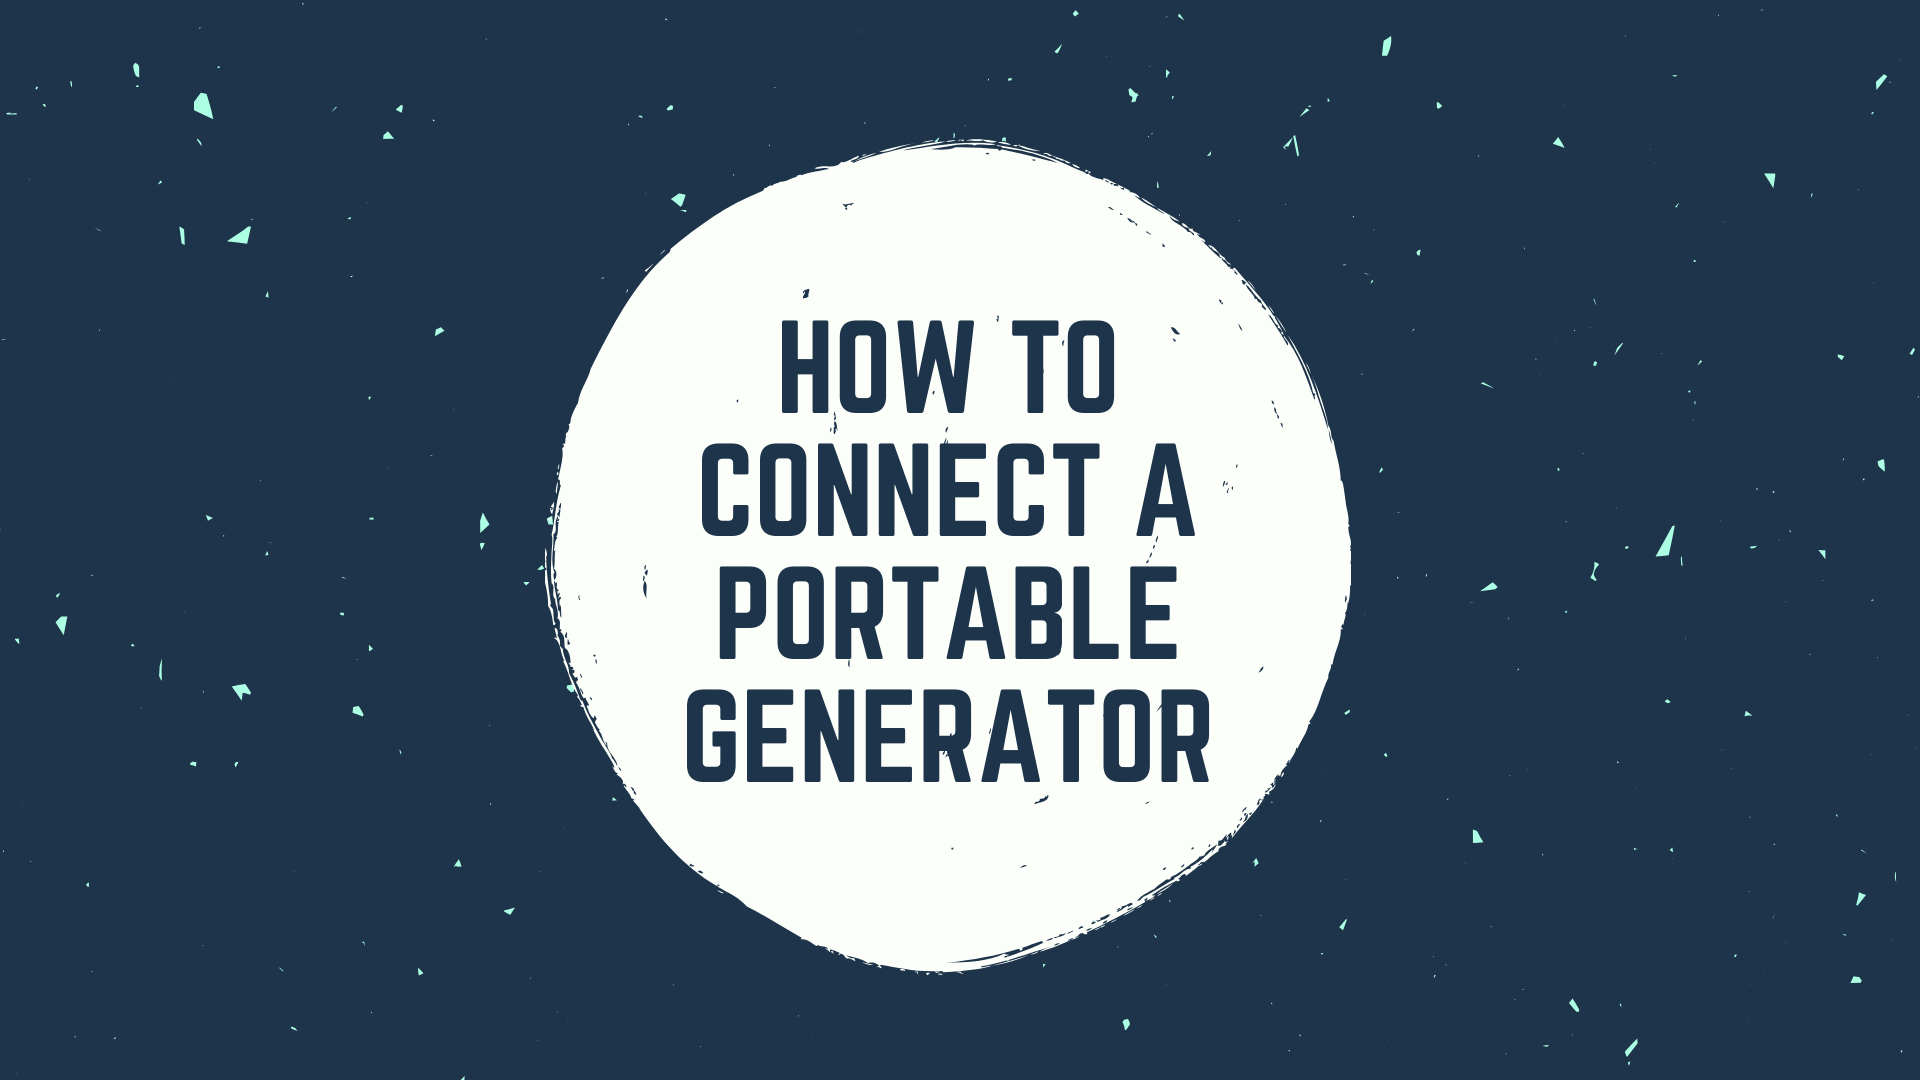 connect portable generator